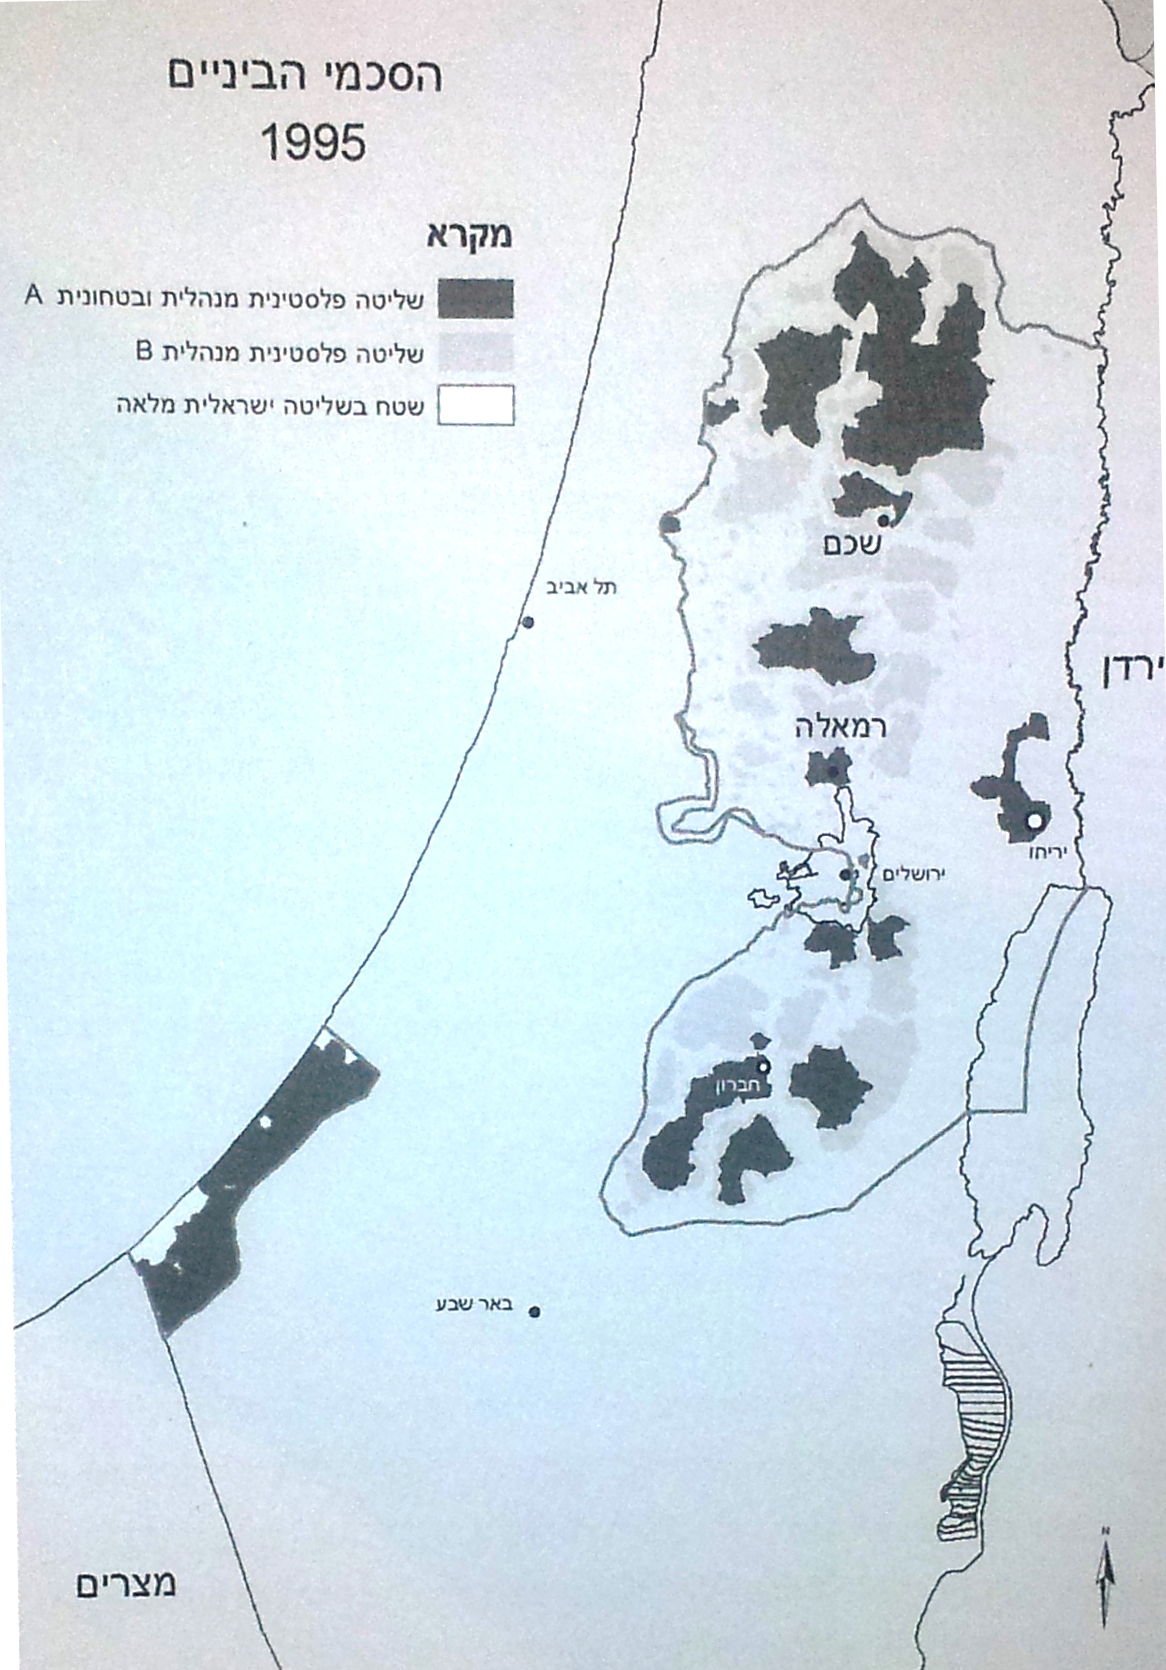 Israeli-Palestinian Interim Agreement (Oslo II) - Map 2 - Hebrew (1995)